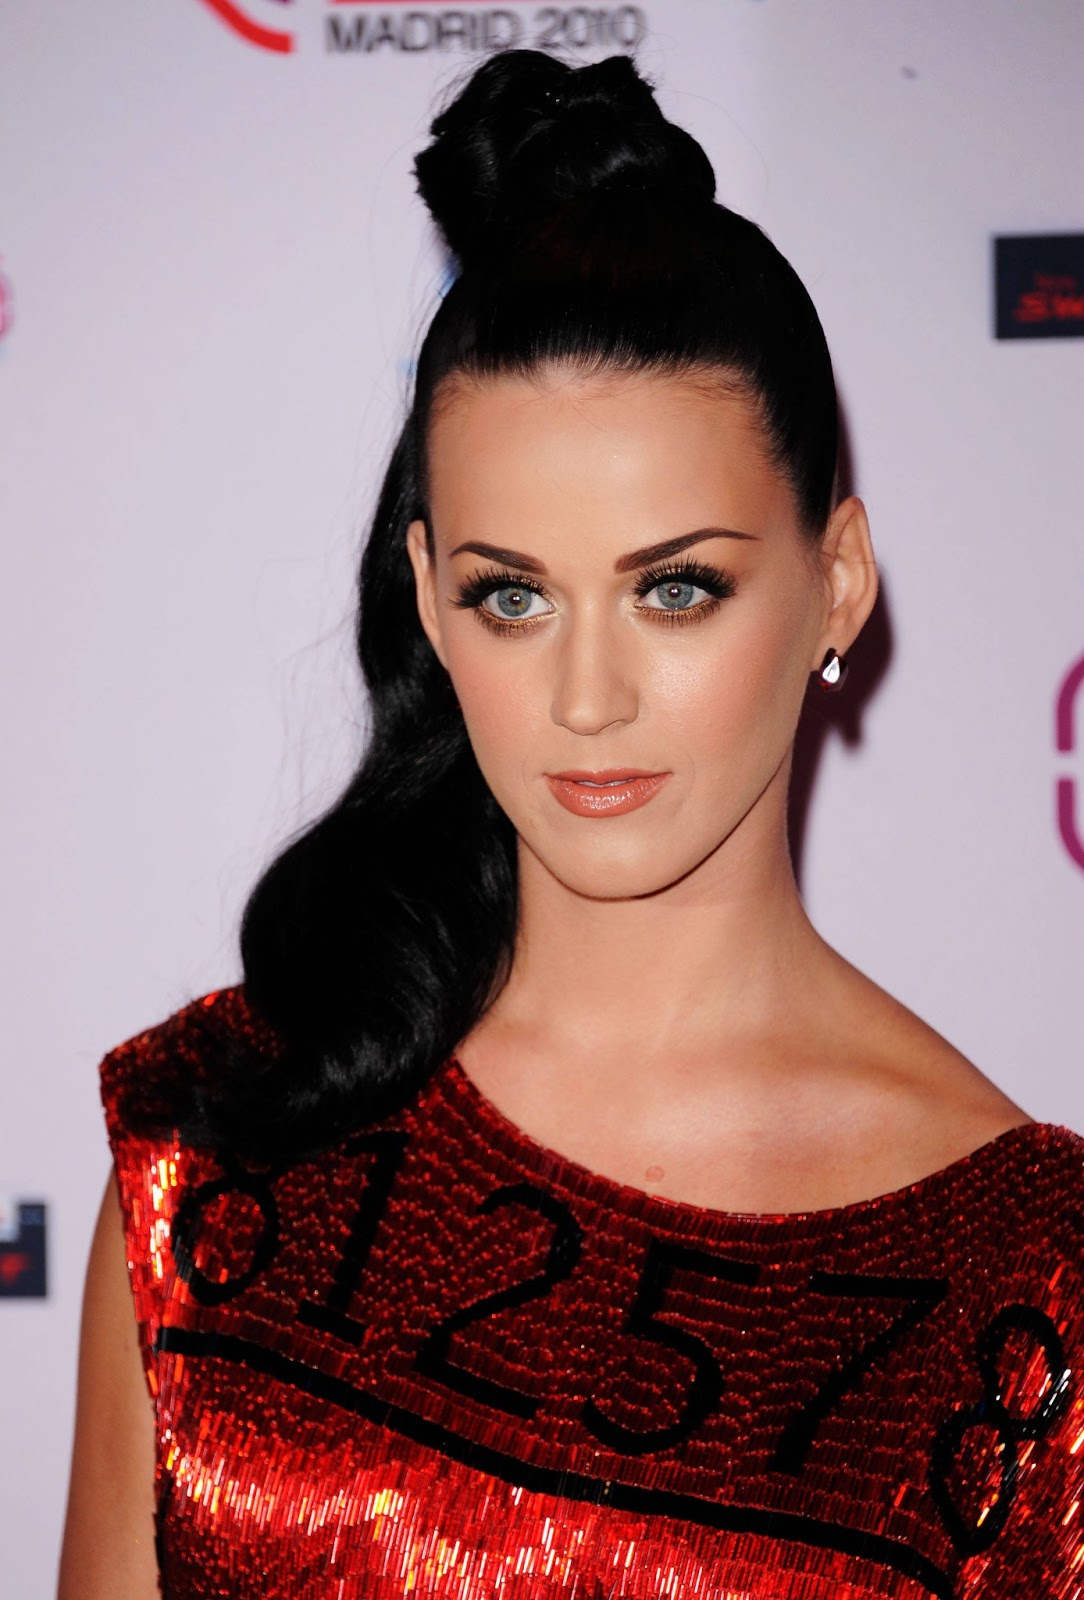 Pinterest Wallpaper Iphone Cute Katy Perry Katy Perry Updo